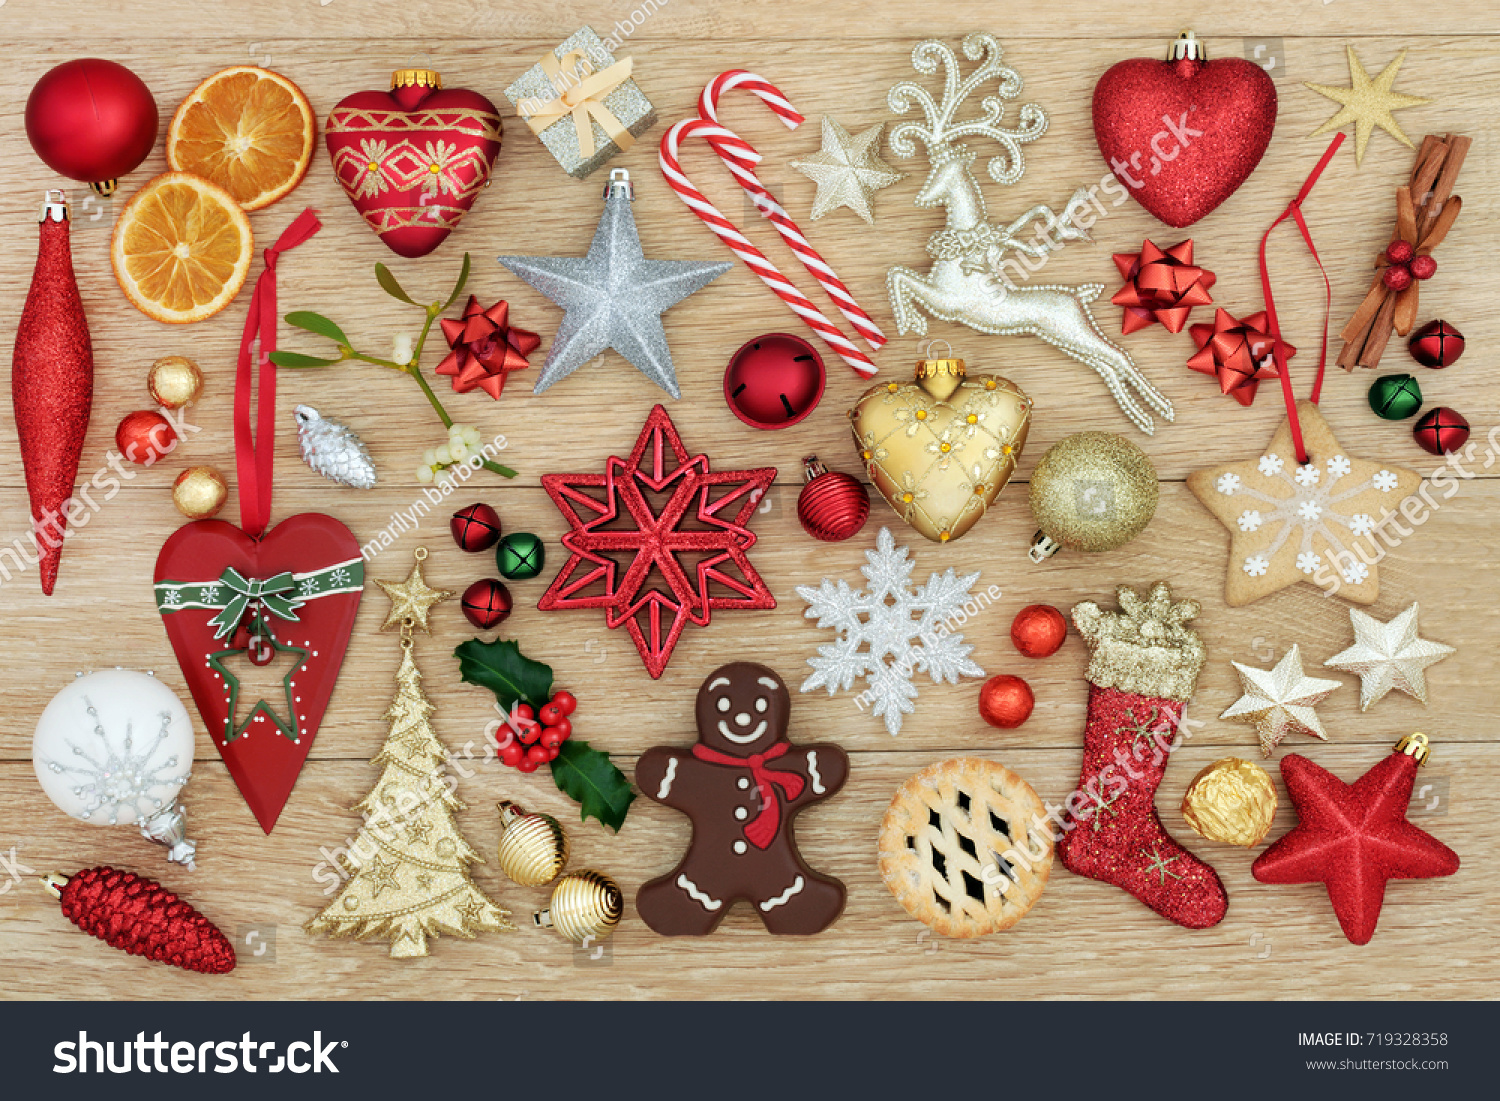 Decorations Symbols Christmas New Old Fashioned Stock Photo (Edit ...